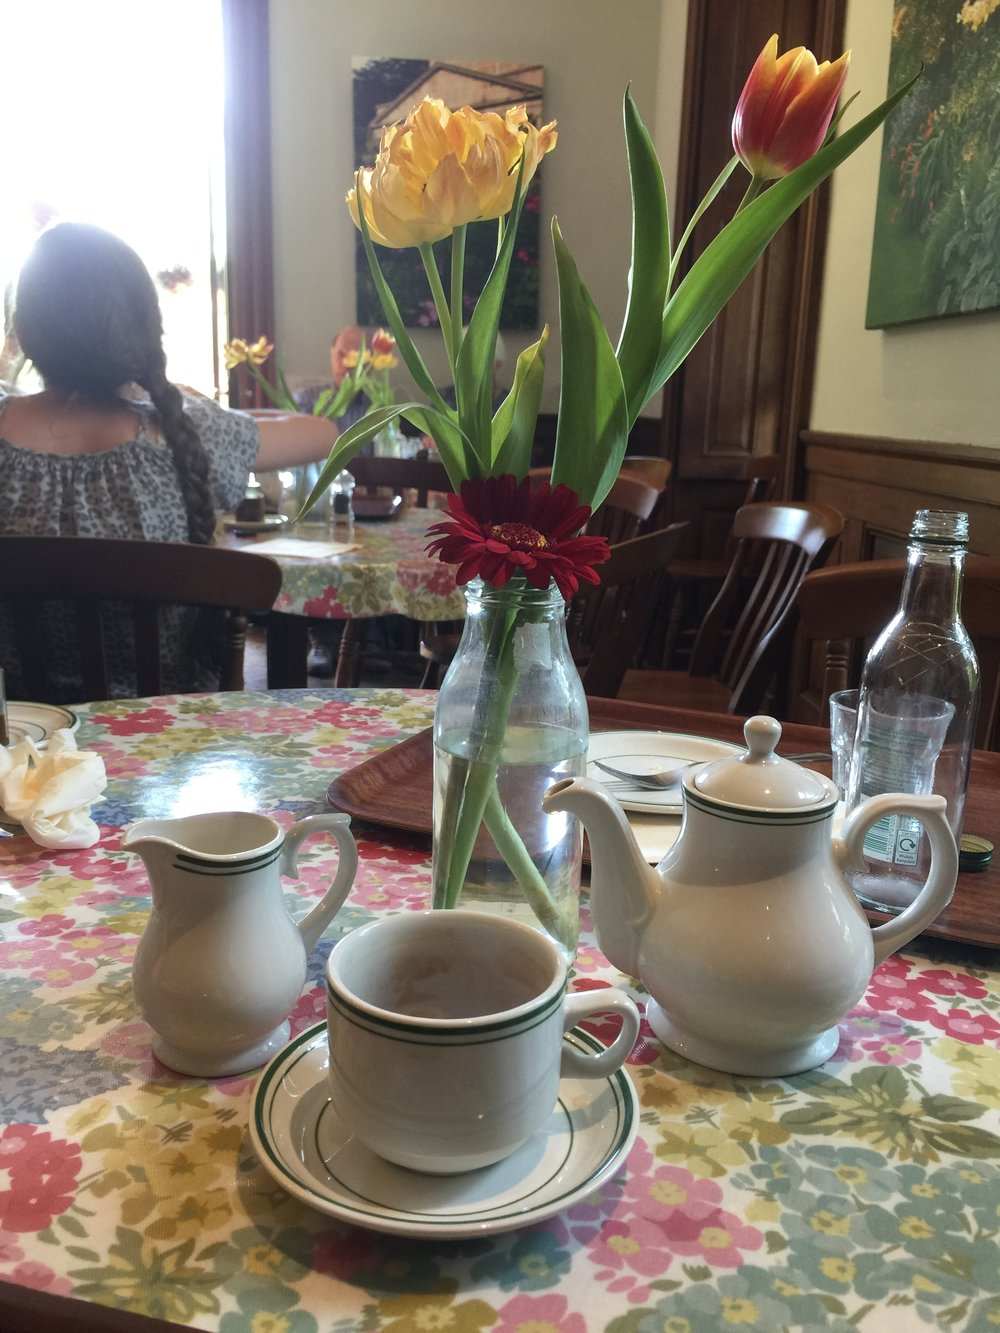 You'll have several opportunities to enjoy afternoon tea at a variety of Tea Shoppes!